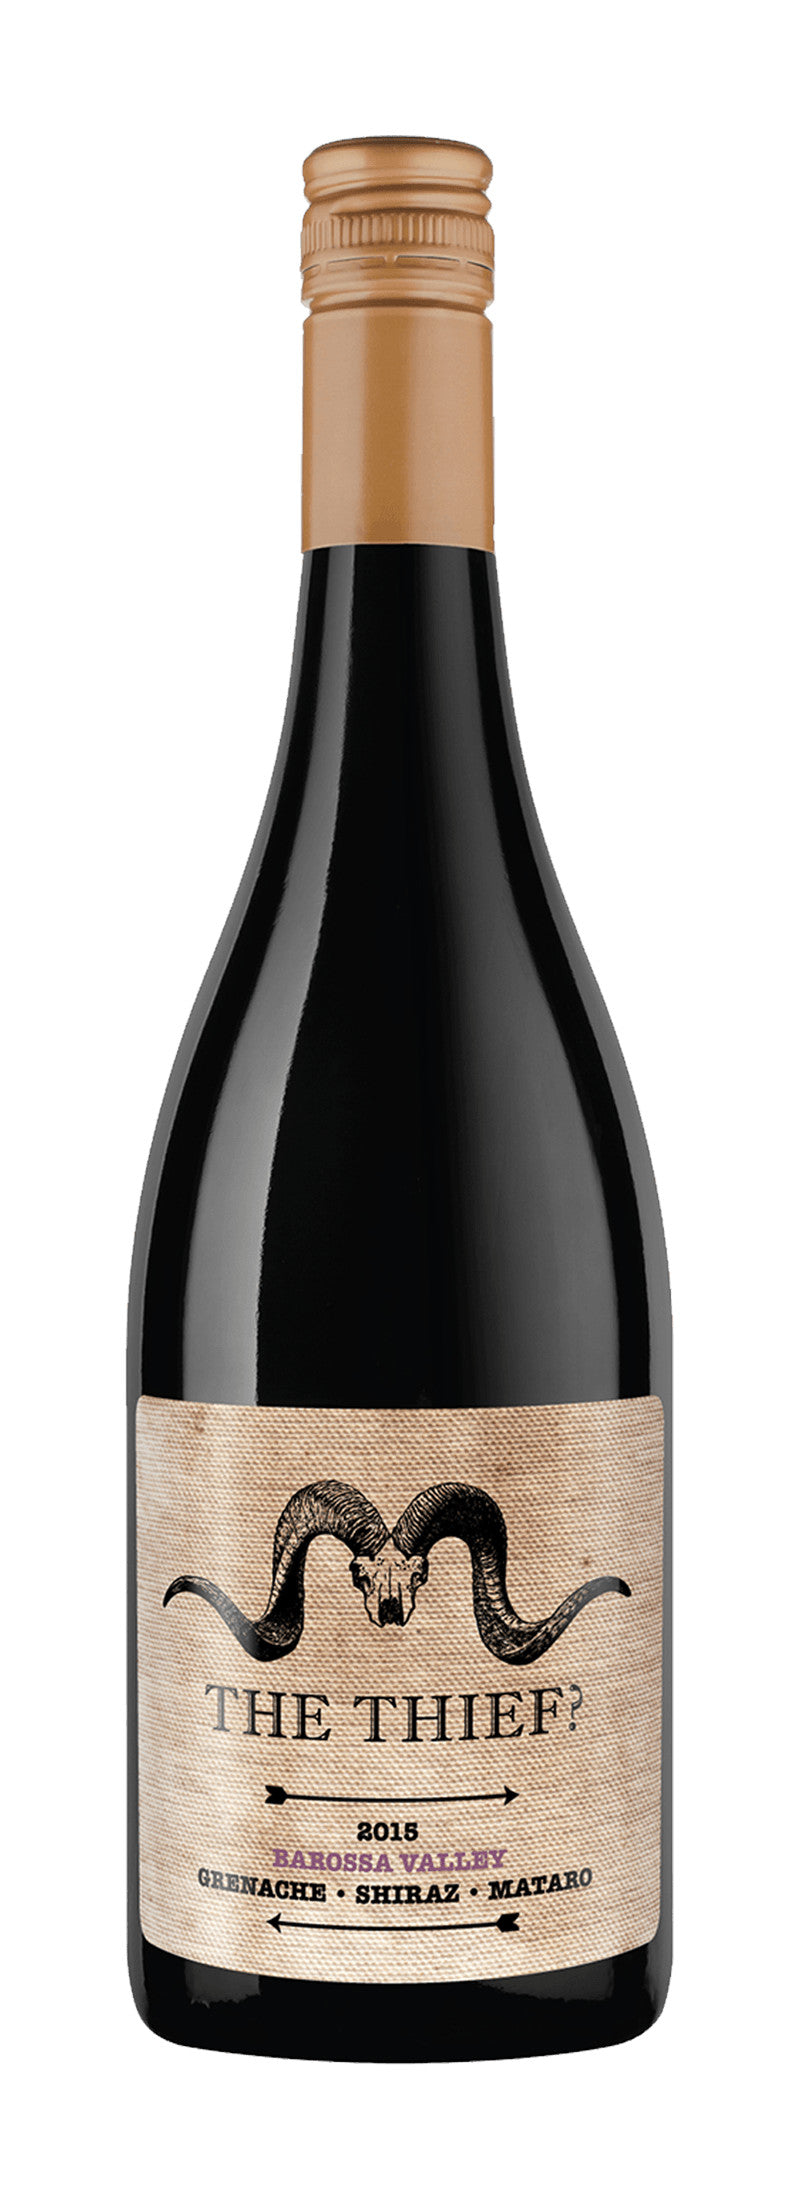 The Thief Barossa Valley Grenache Shiraz Mataro (GSM) 2017 / 6 pack ( Single bottle price is $28)